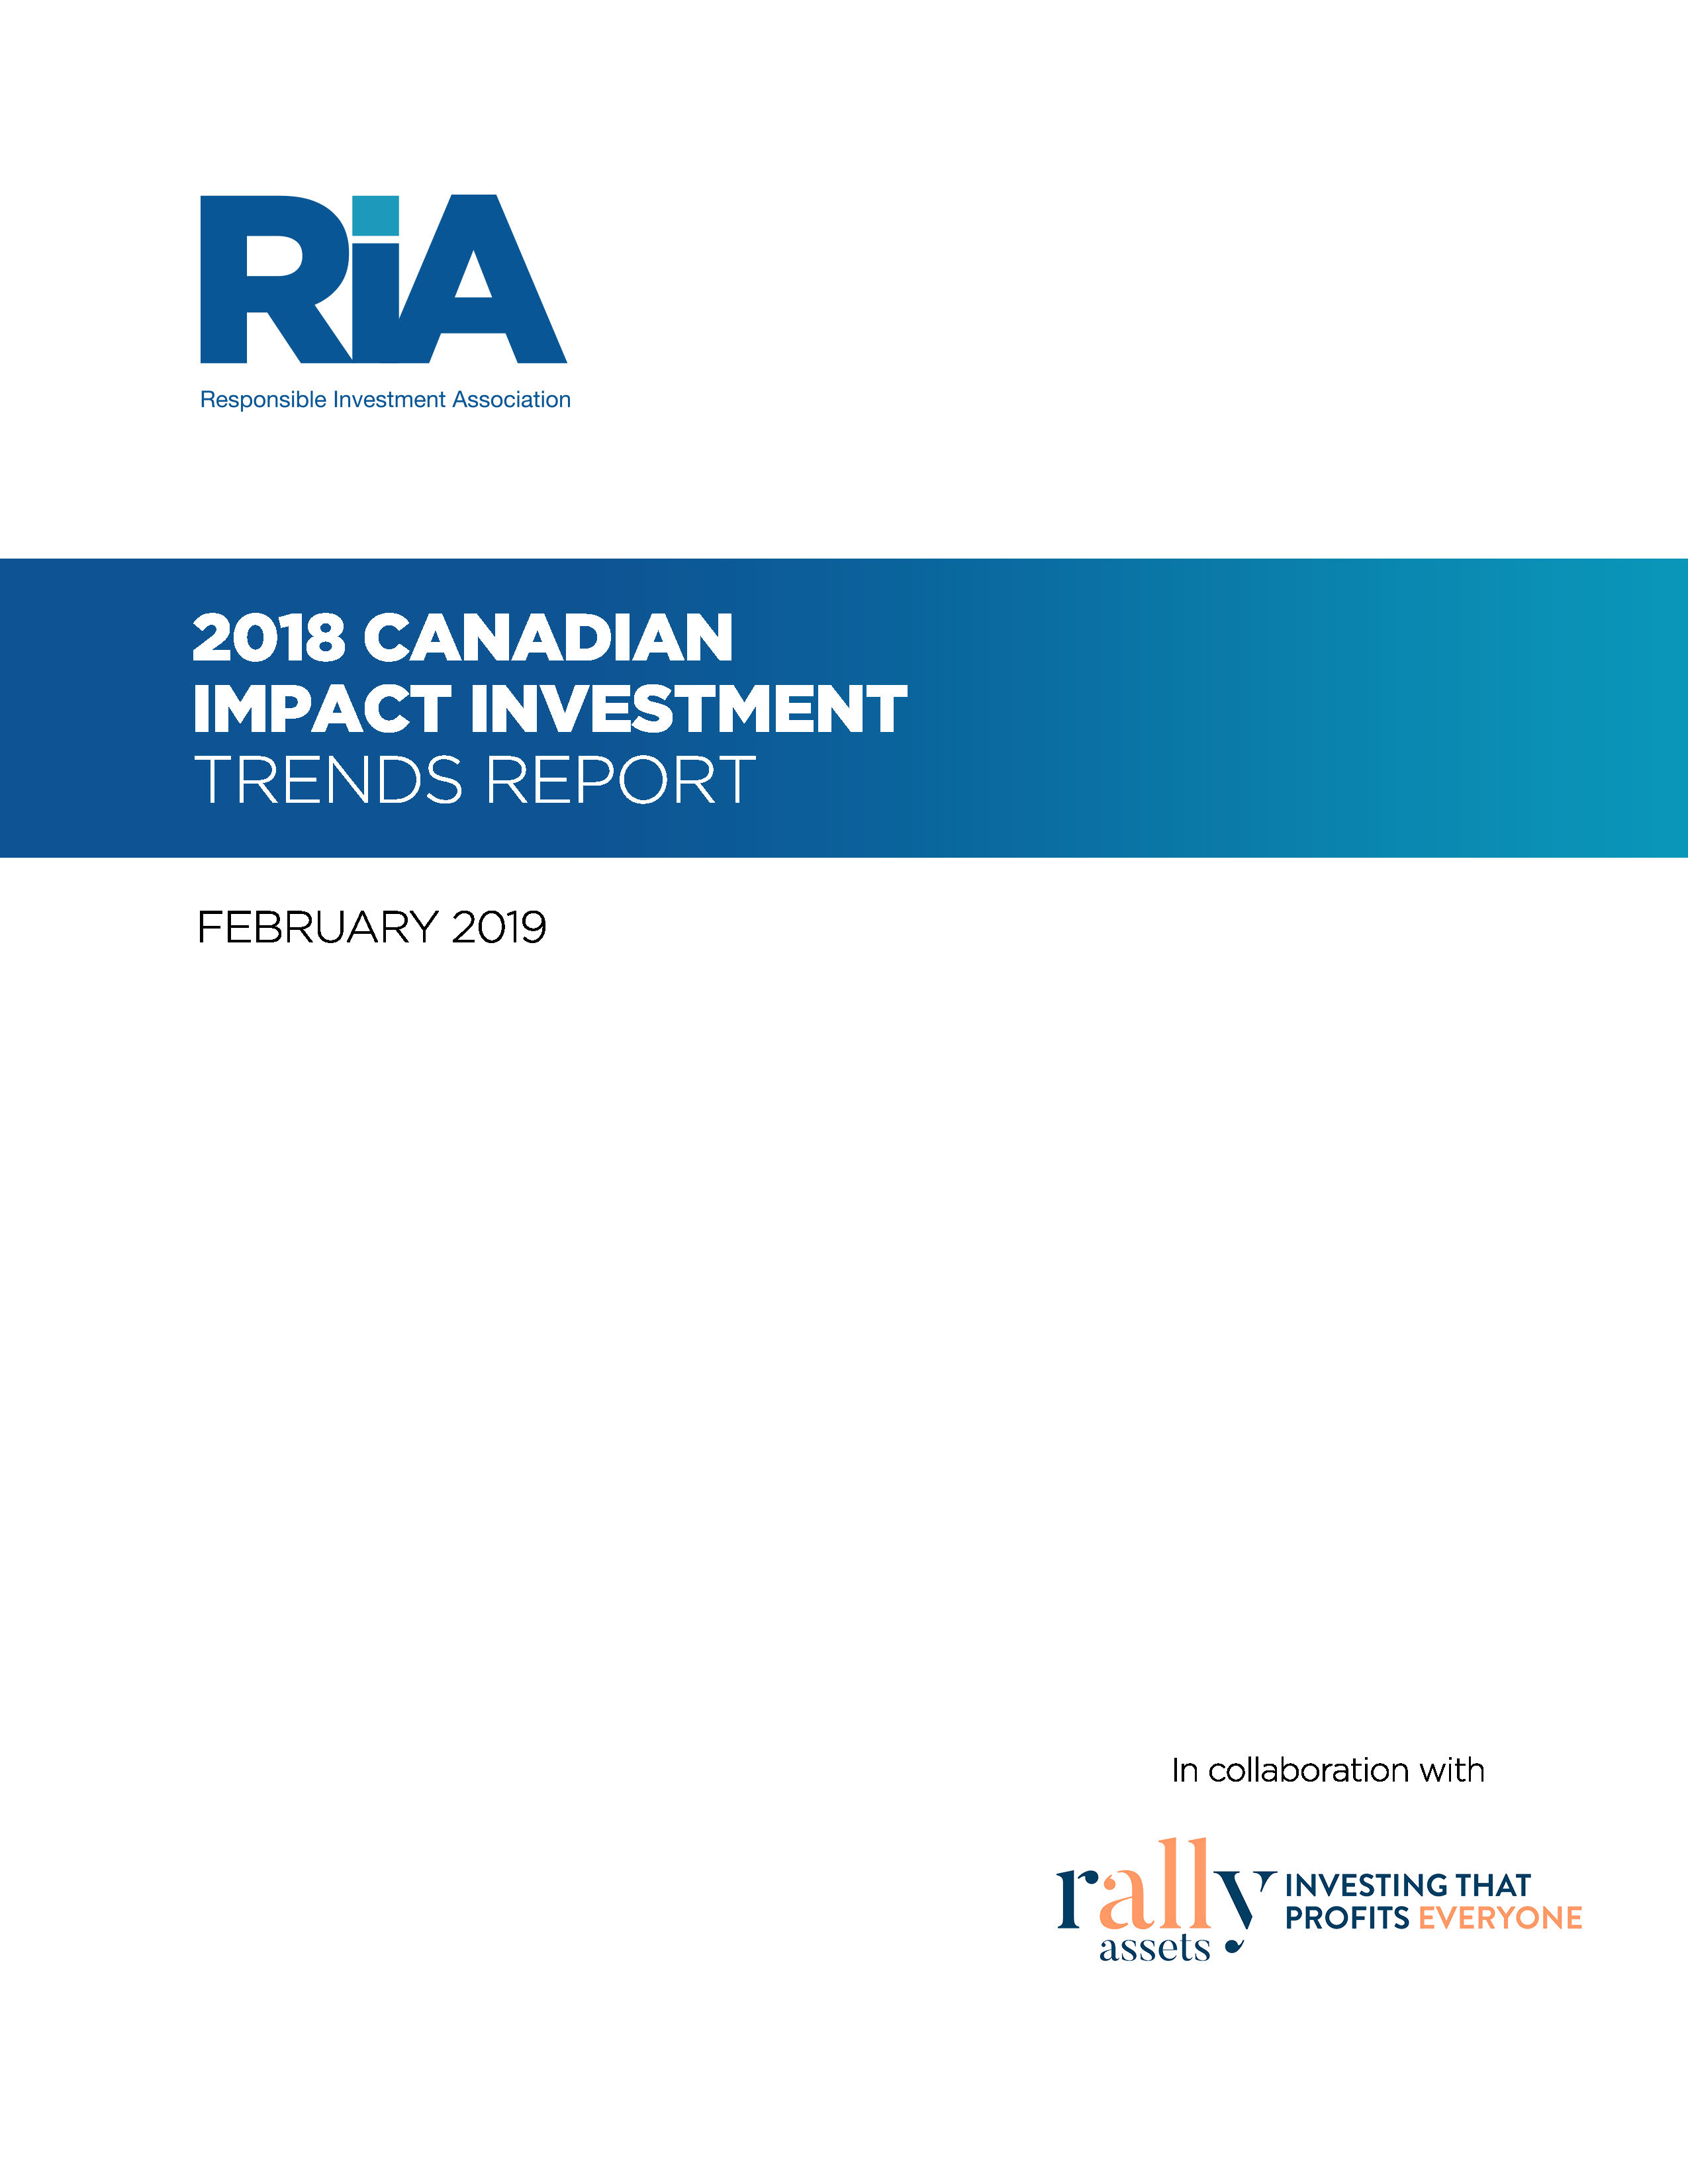 Pages from 2018-Canadian-Impact-Investment-Trends-Report-1